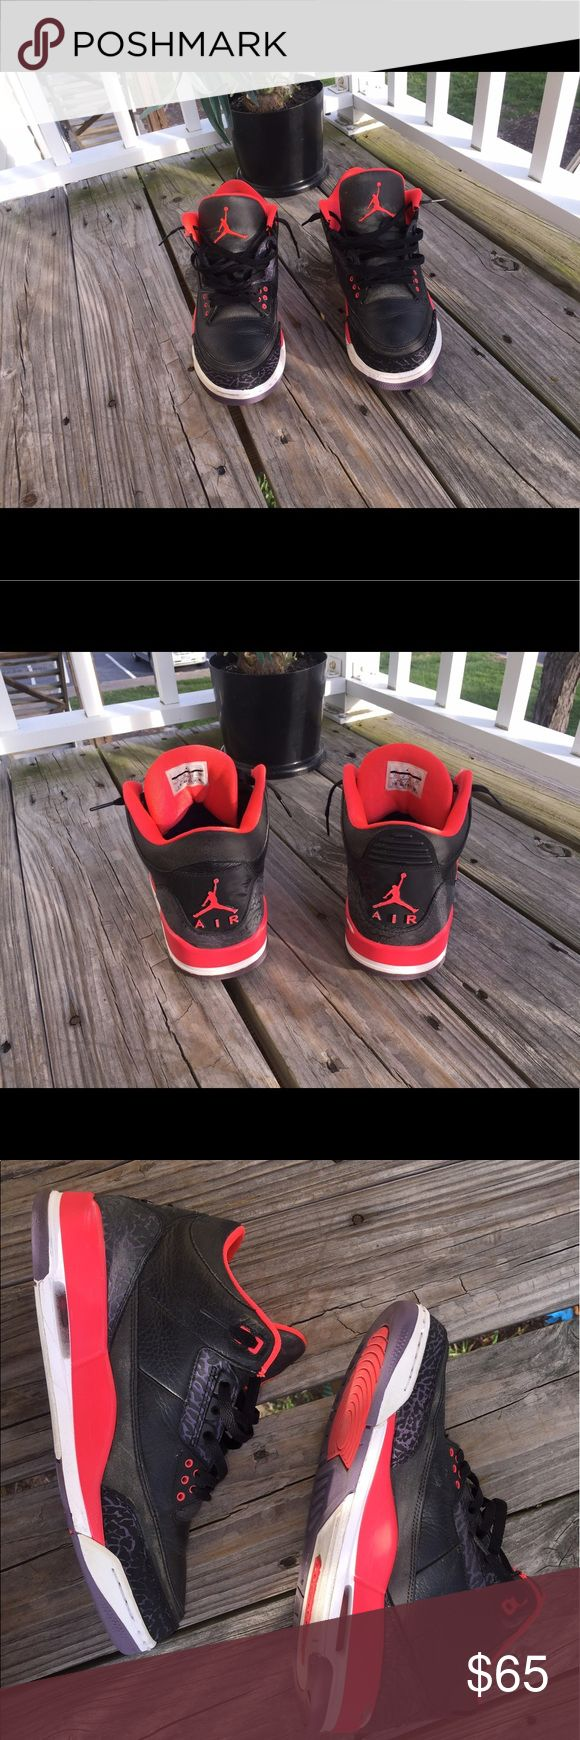 Air Jordan Retro 3 Crimson Size 11.. Flaws are clearly shown but overall these are in good condition considering price Jordan Shoes Sneakers